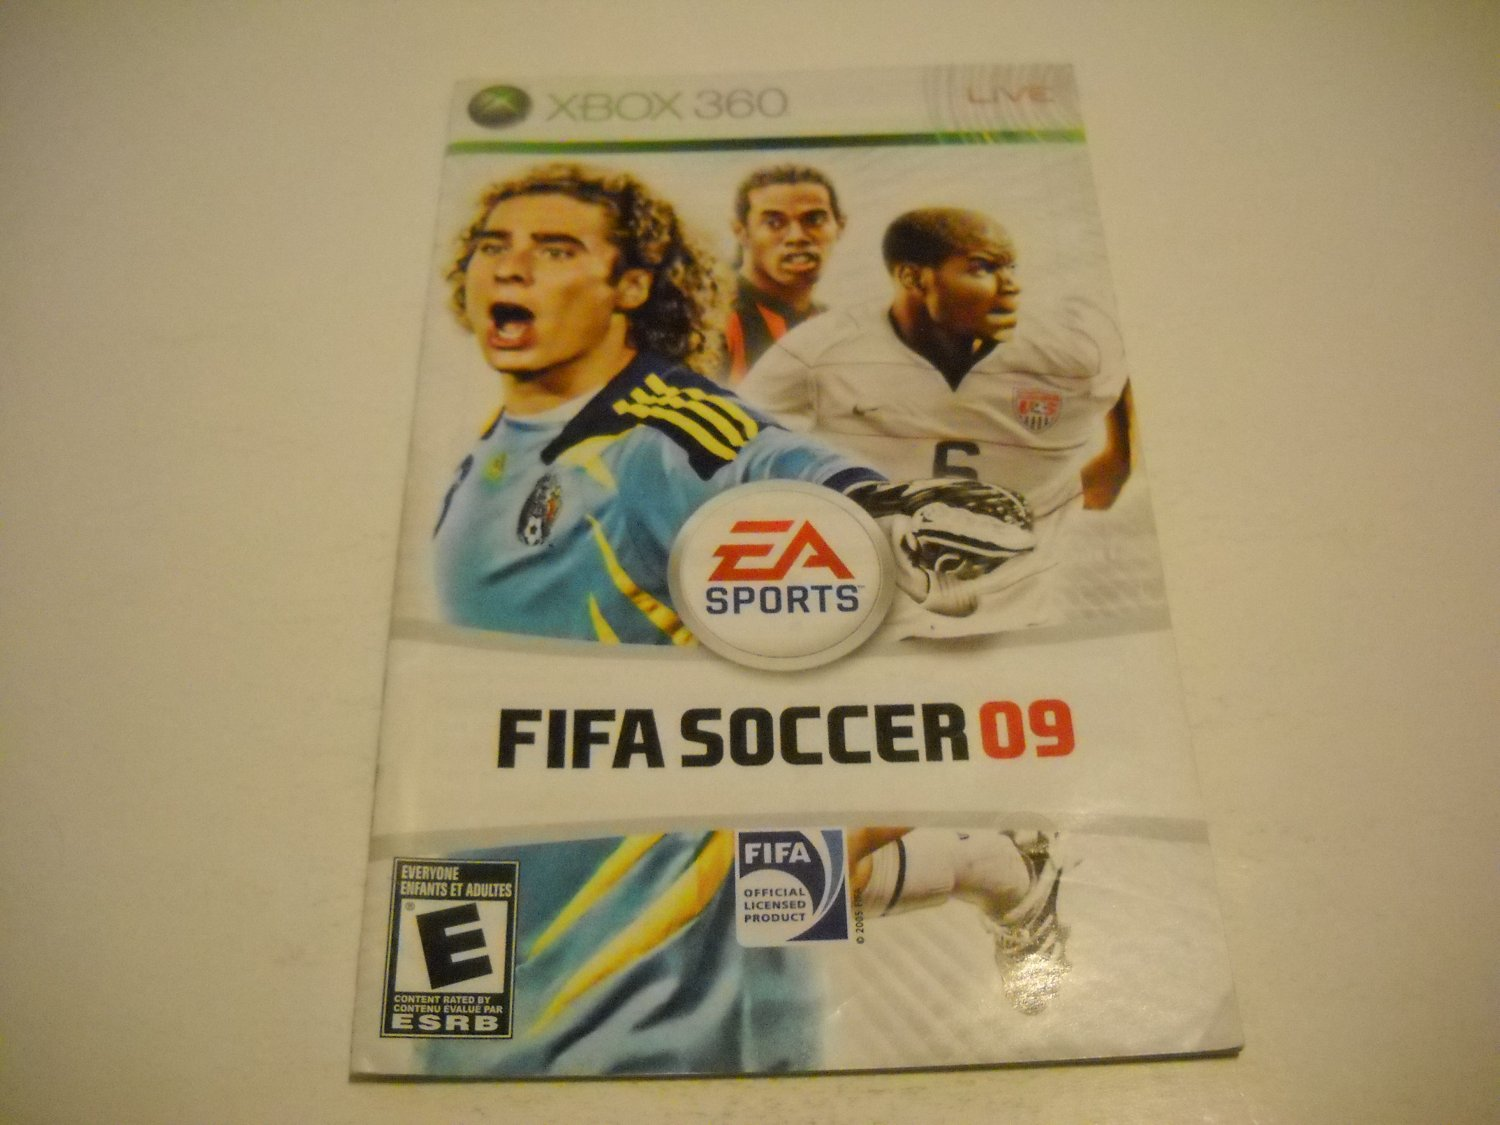 Manual ONLY ~  for FIFA Soccer 09   - Xbox 360 Instruction Booklet